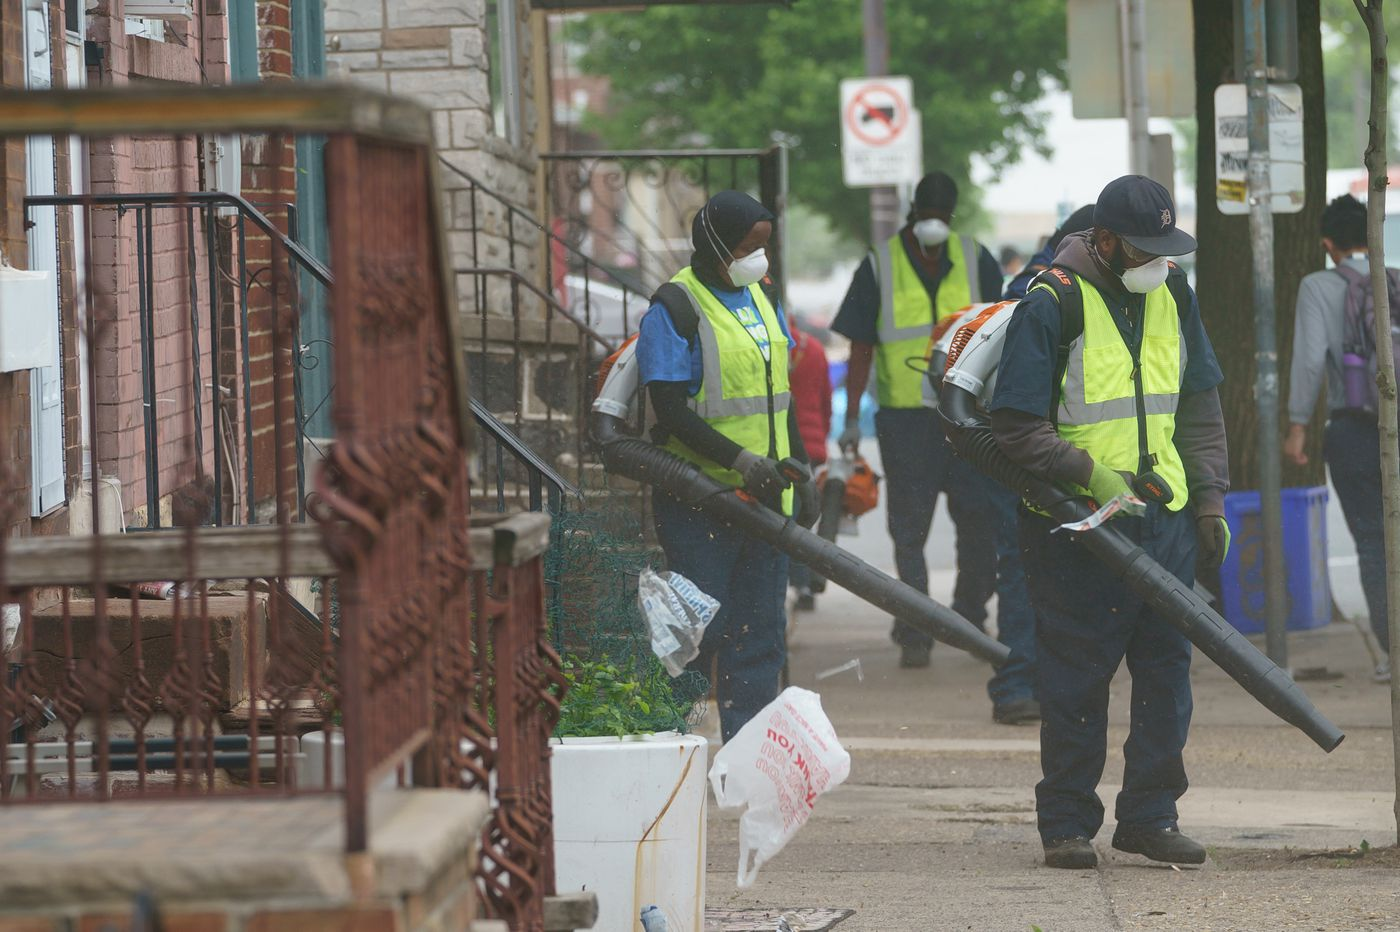 Philly street sweeping program hits a road bump | Editorial